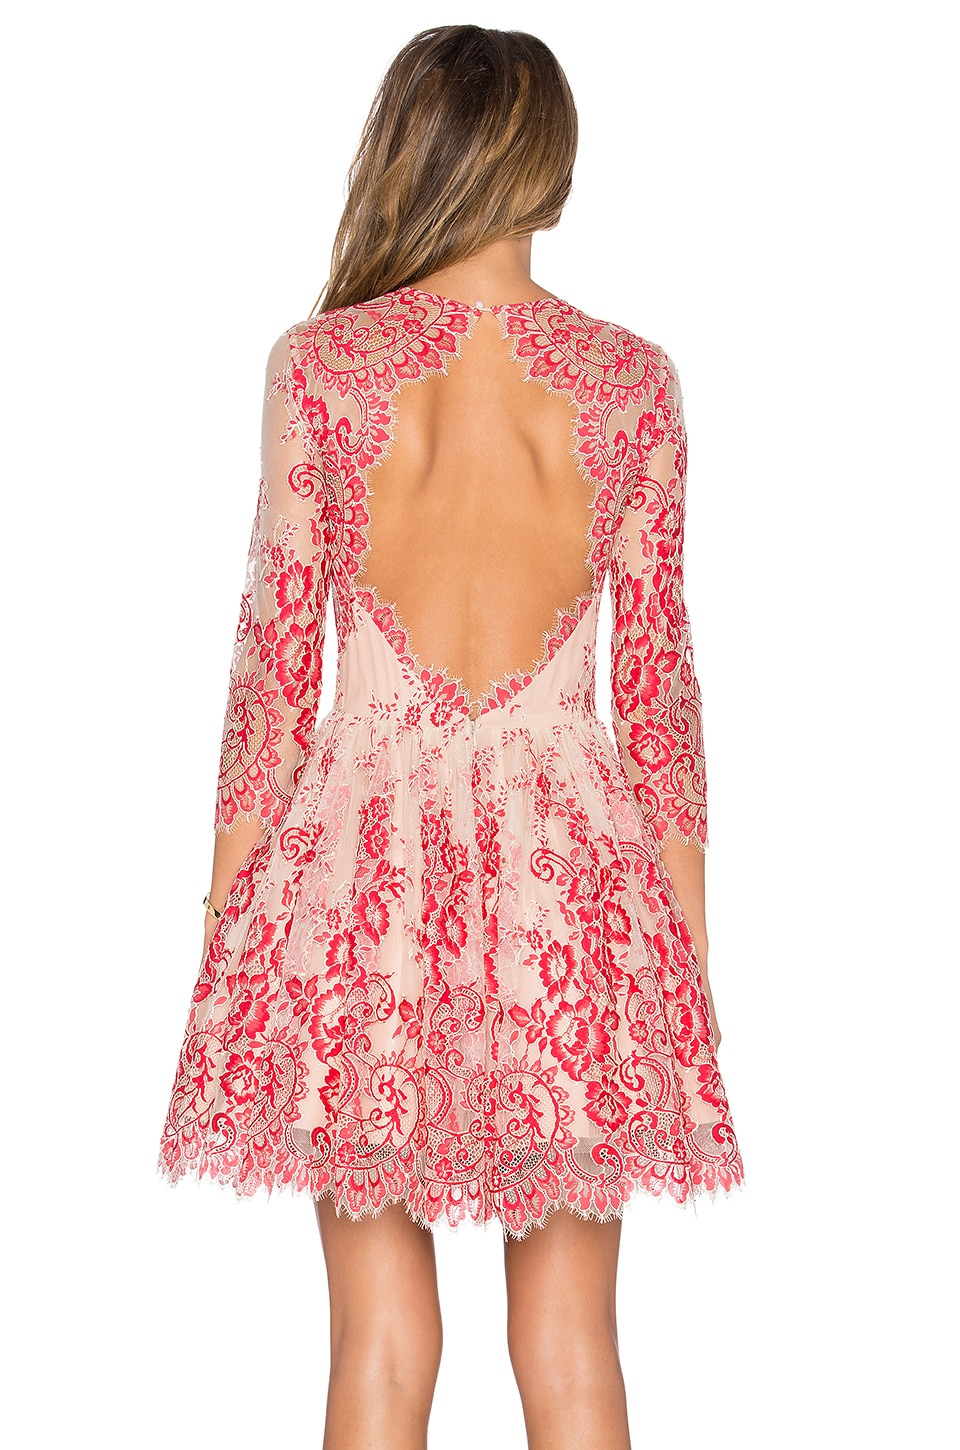 Alexis Bella Mini Dress in Red Lace